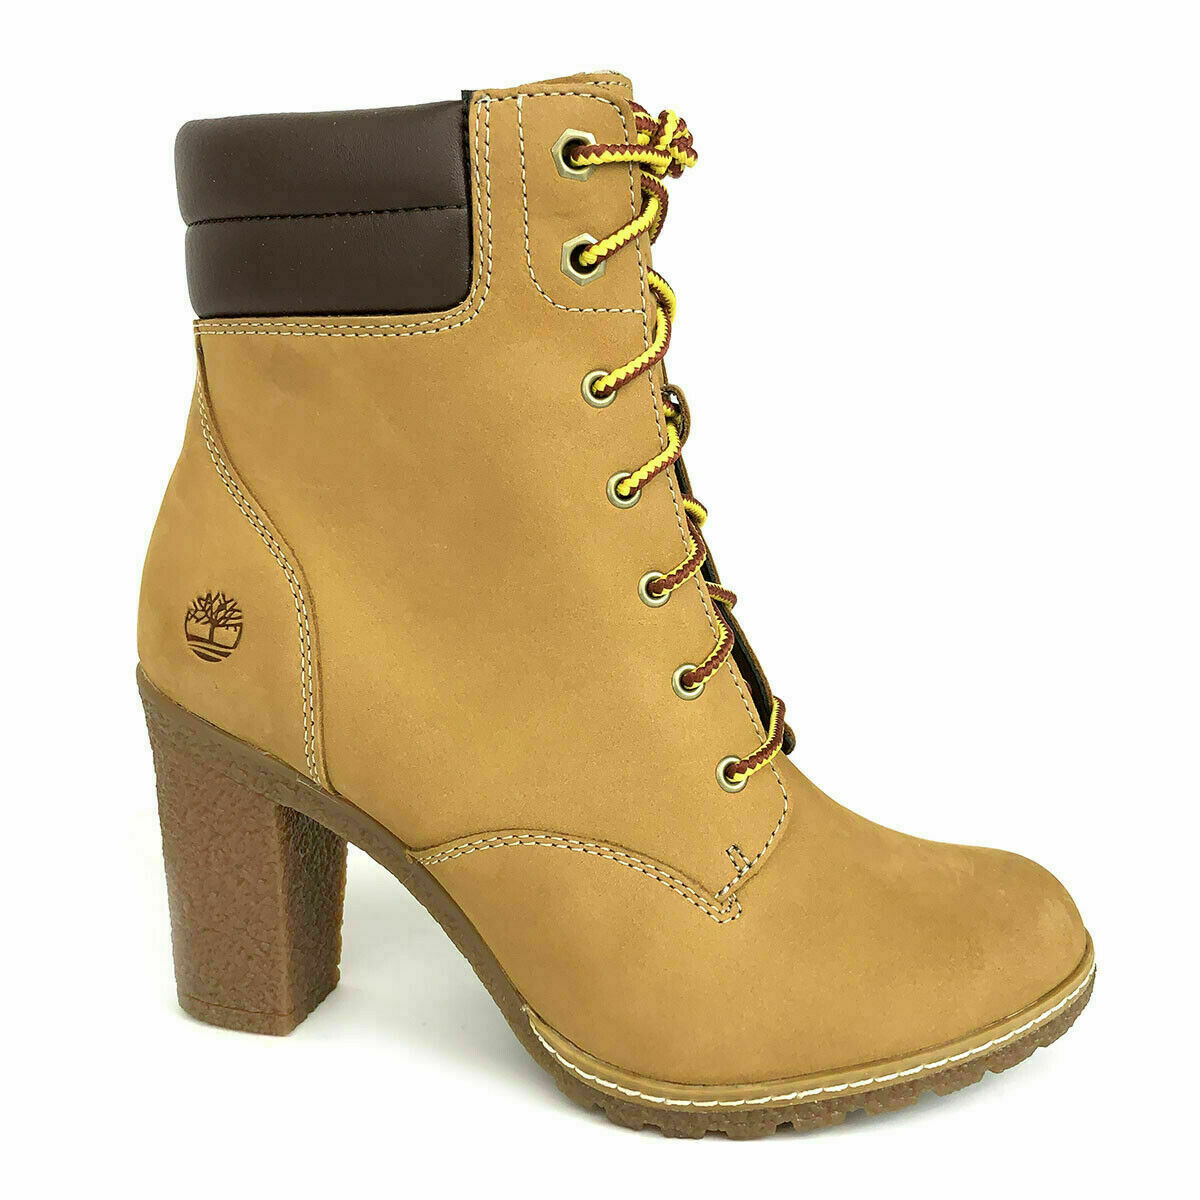 Primary image for Timberland NEW Womens Sexy High Heel Boots Tillston 0A1KJH Girls Ladies SIZE